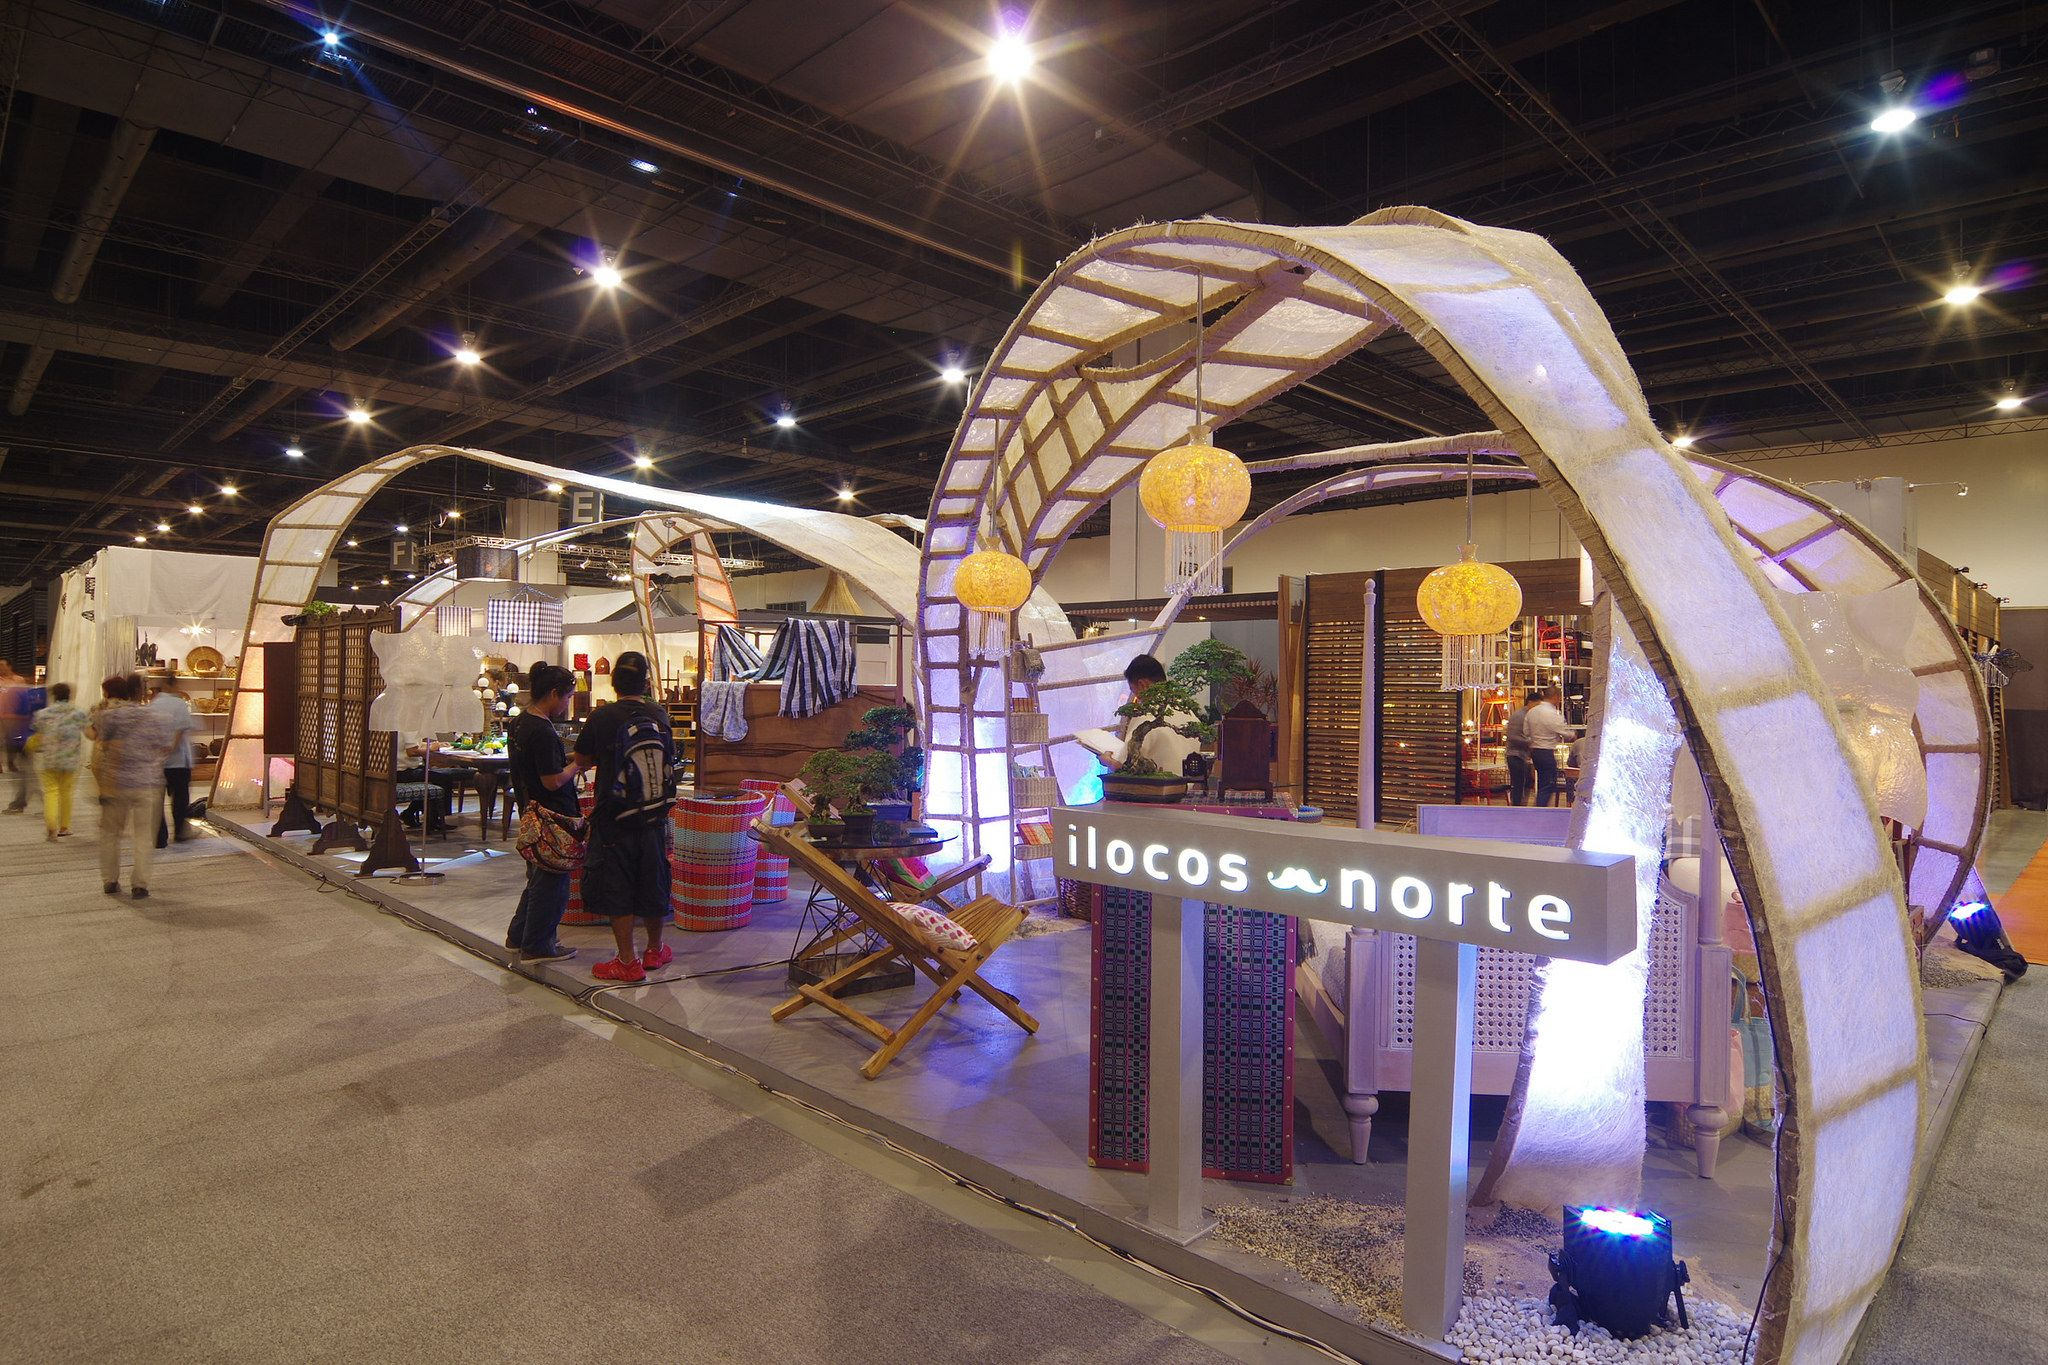 Manila Fame Welcomes Exhibitors, Int`l Buyers To Bigger Show | https://goo.gl/aEQGt9